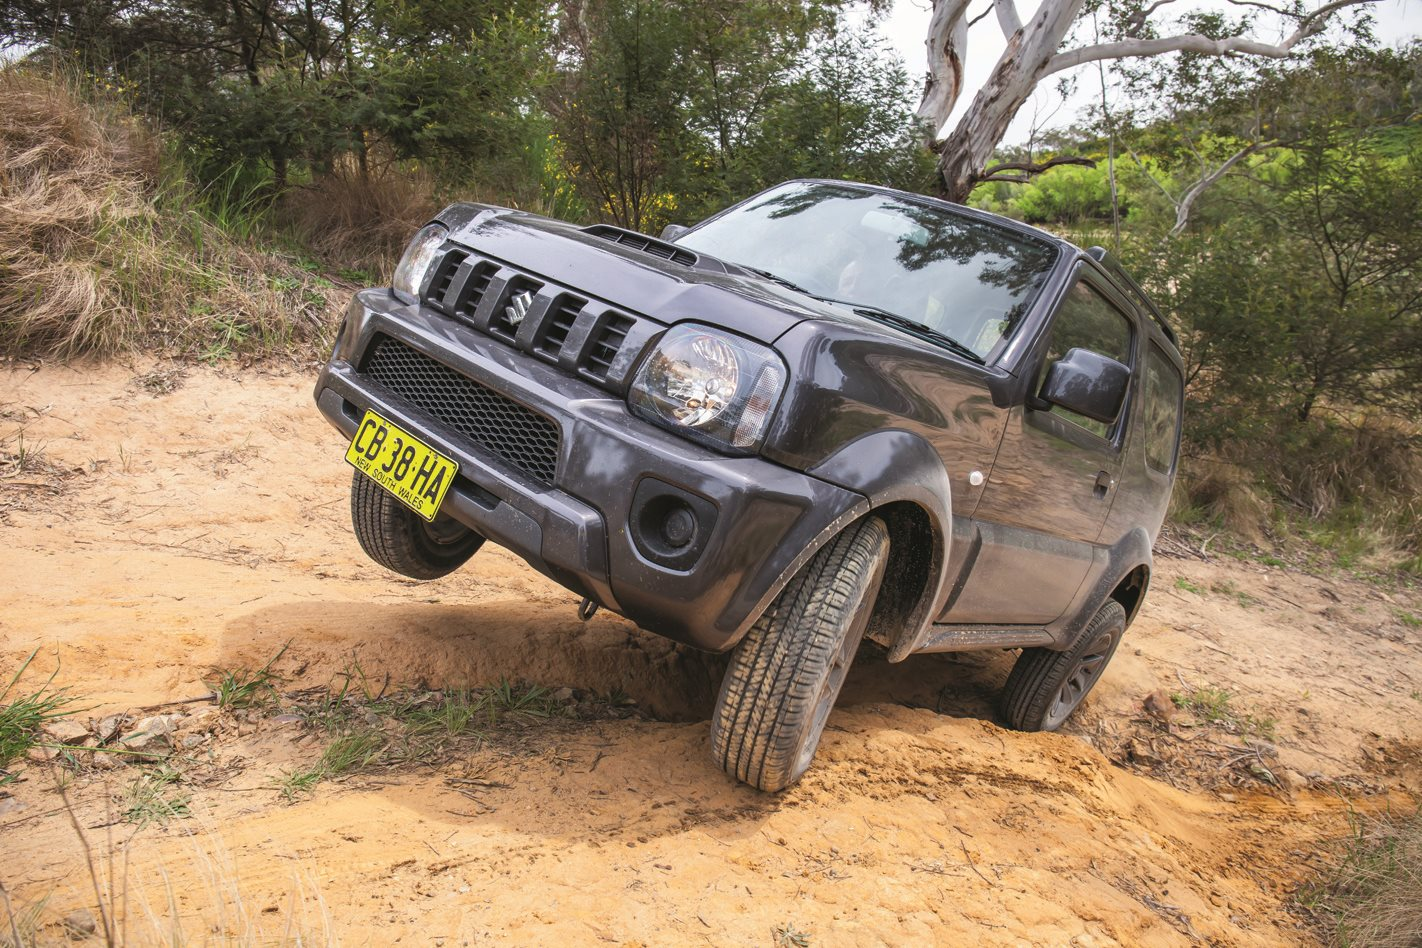 suzuki jimny sierra driven 4x4 australia. Black Bedroom Furniture Sets. Home Design Ideas